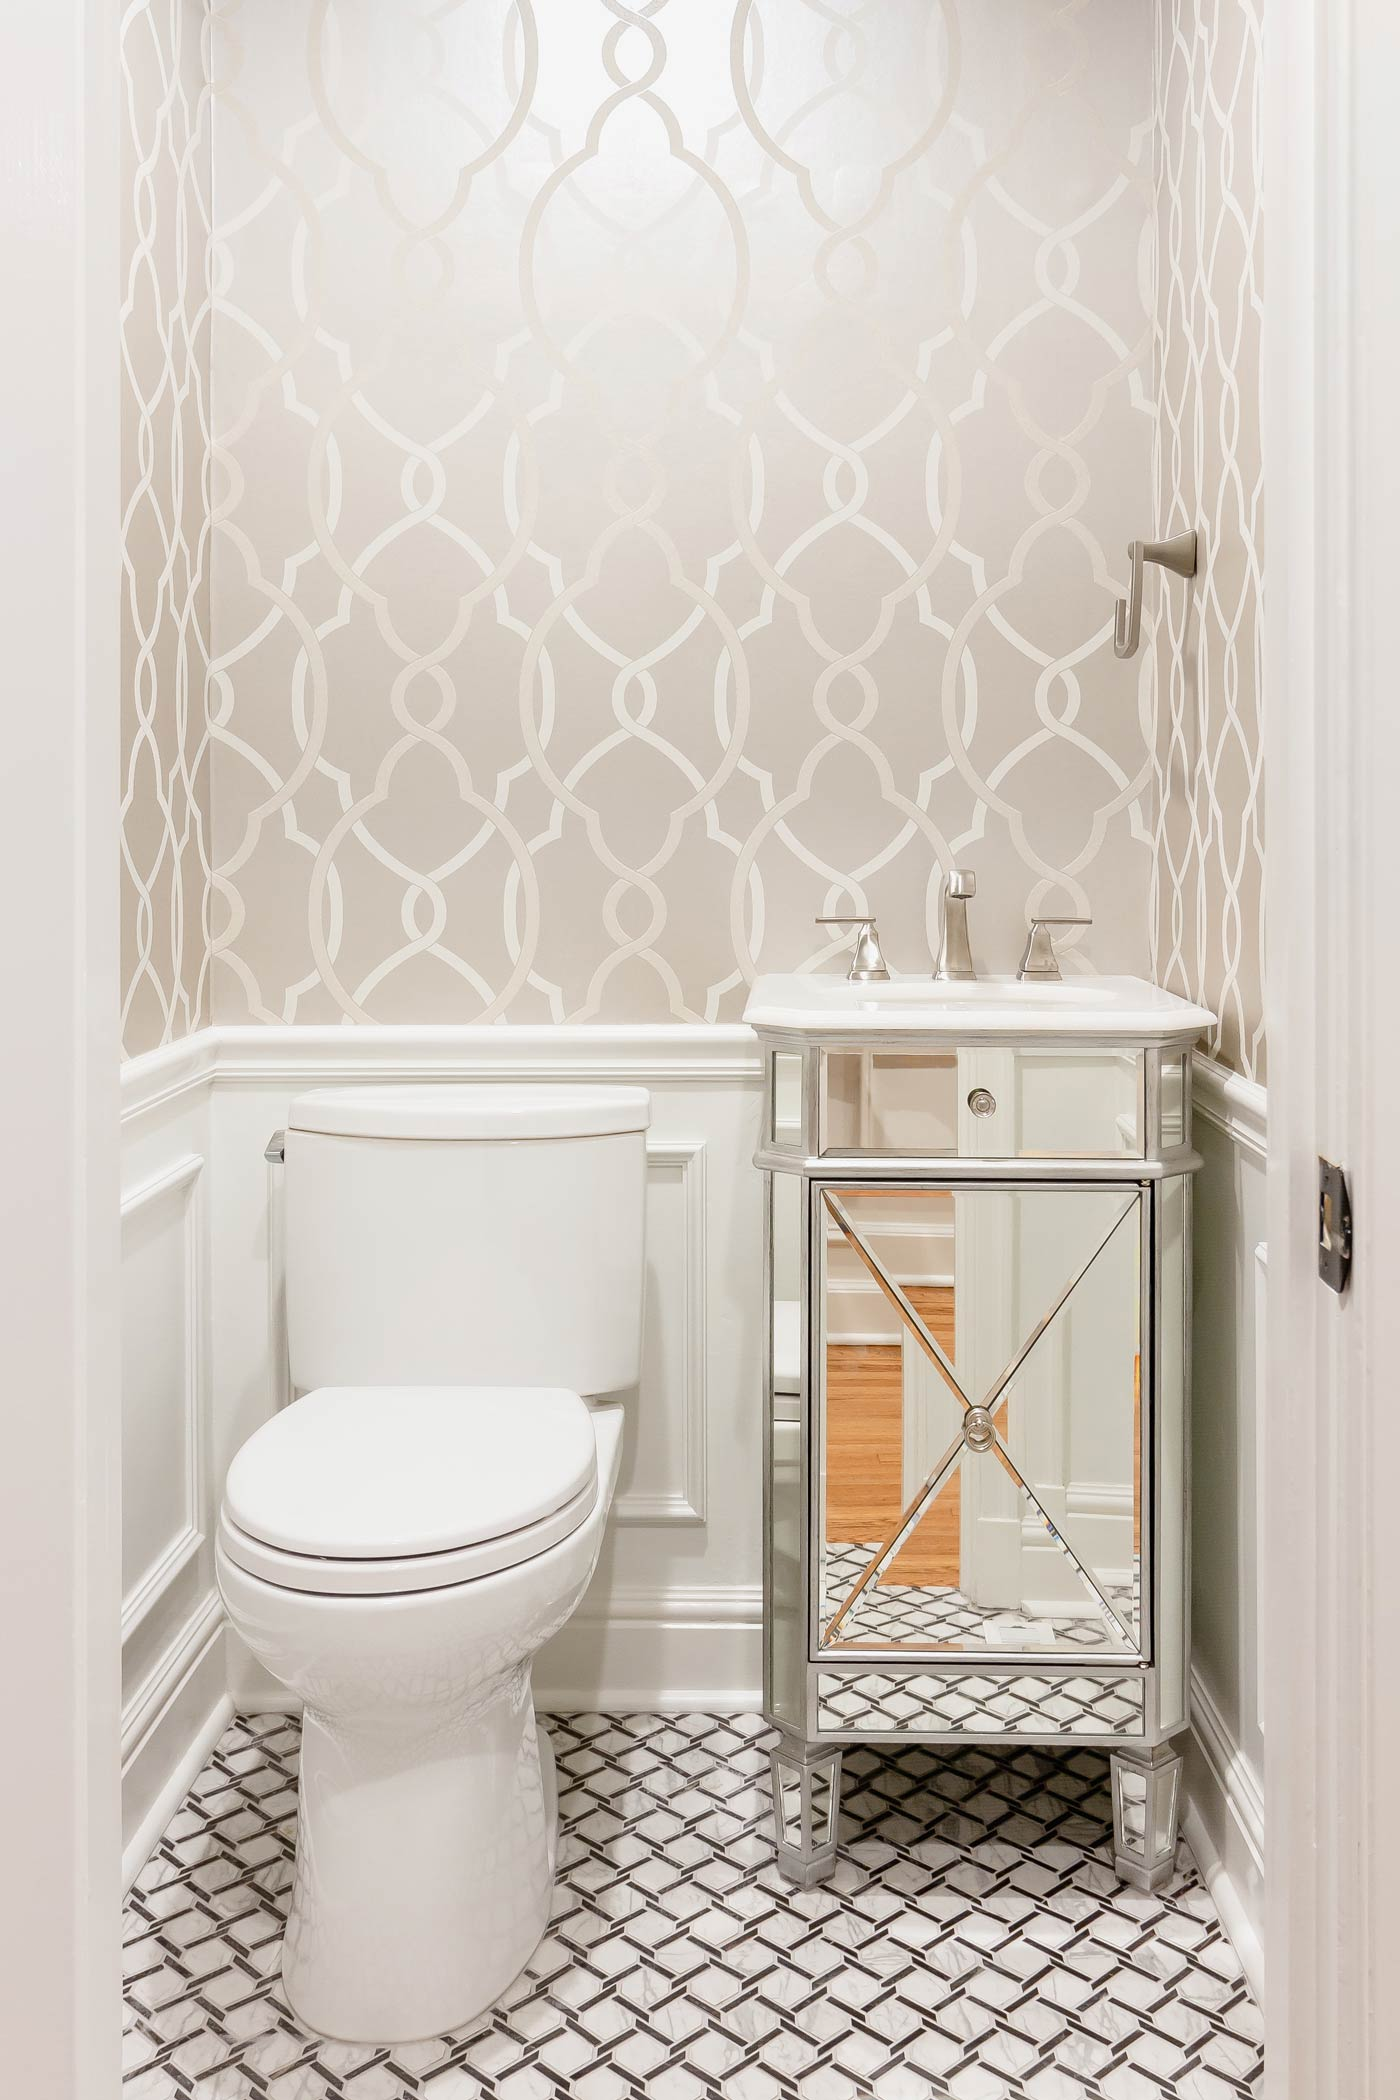 Bathroom Remodel Projects In The Tulsa Area